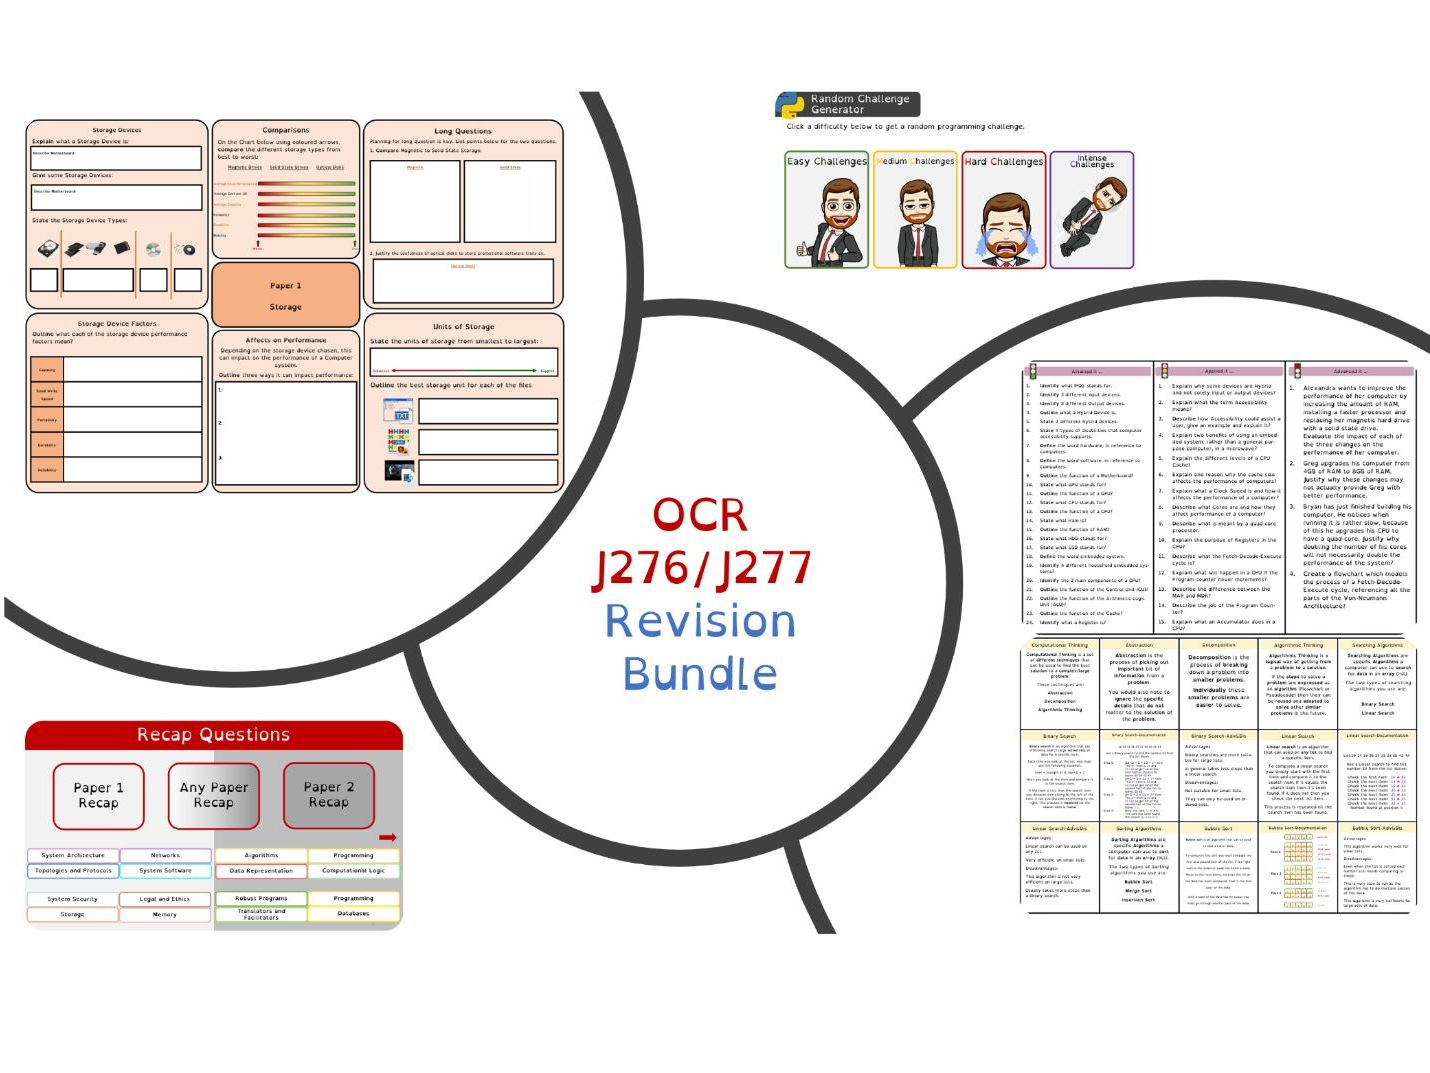 Secondary Data And Information Resources